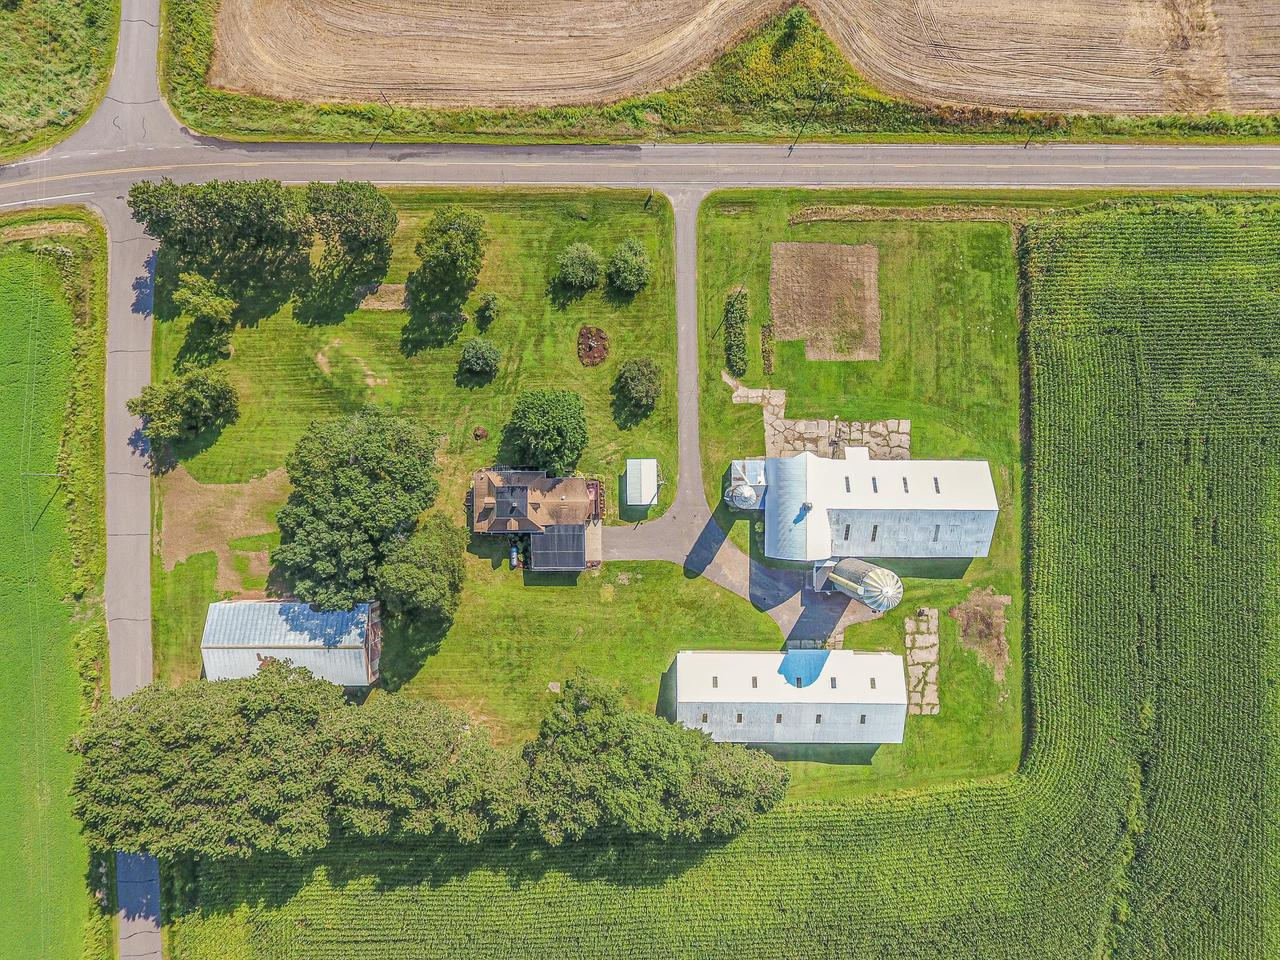 Historic stone farmhouse on 5 acres in Chippewa County. 4 outbuildings w/16000+ square feet of storage for toys, animals, toys. Perfect for business or hobby farm, or country living. Low taxes, all new flooring/paint, apple trees, raspberries, ATV trails nearby, HUGE kitchen, formal dining, Main laundry, attd garage, hip metal roof barn, two pole sheds & add'l storage. Deck, porch, stunning views.